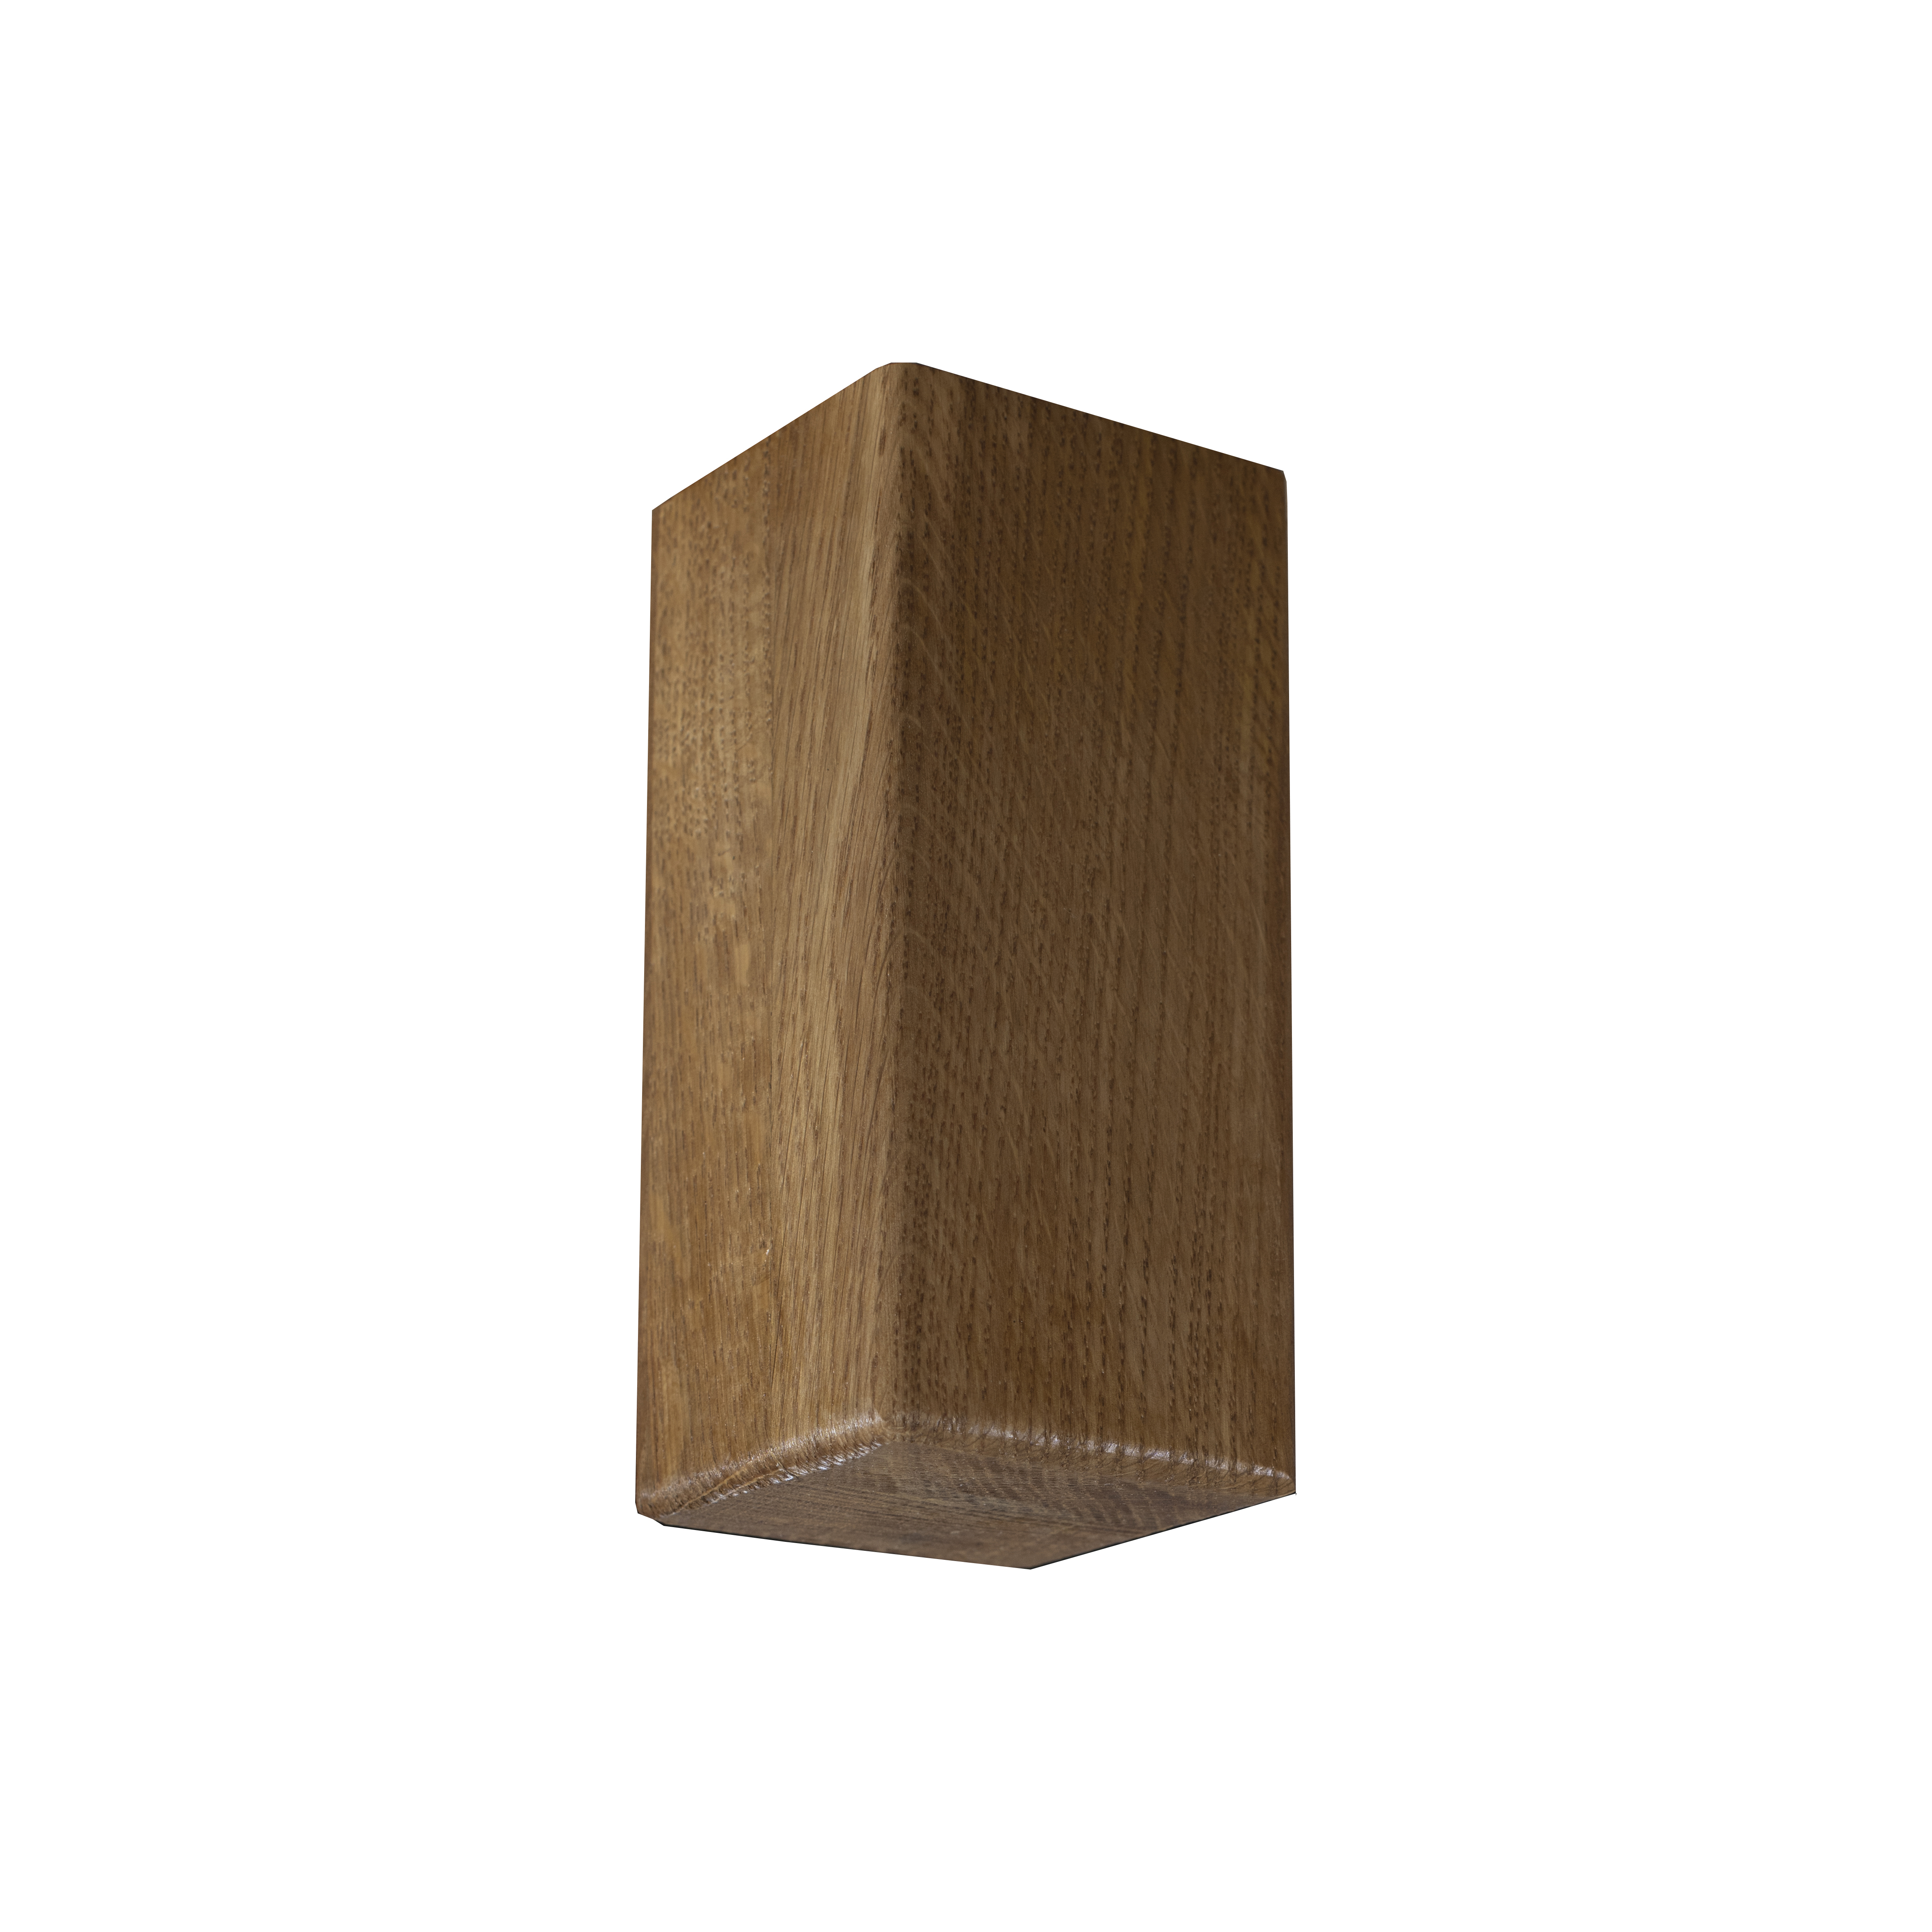 12 cm Somerville Casual ben Oak - englesson.se